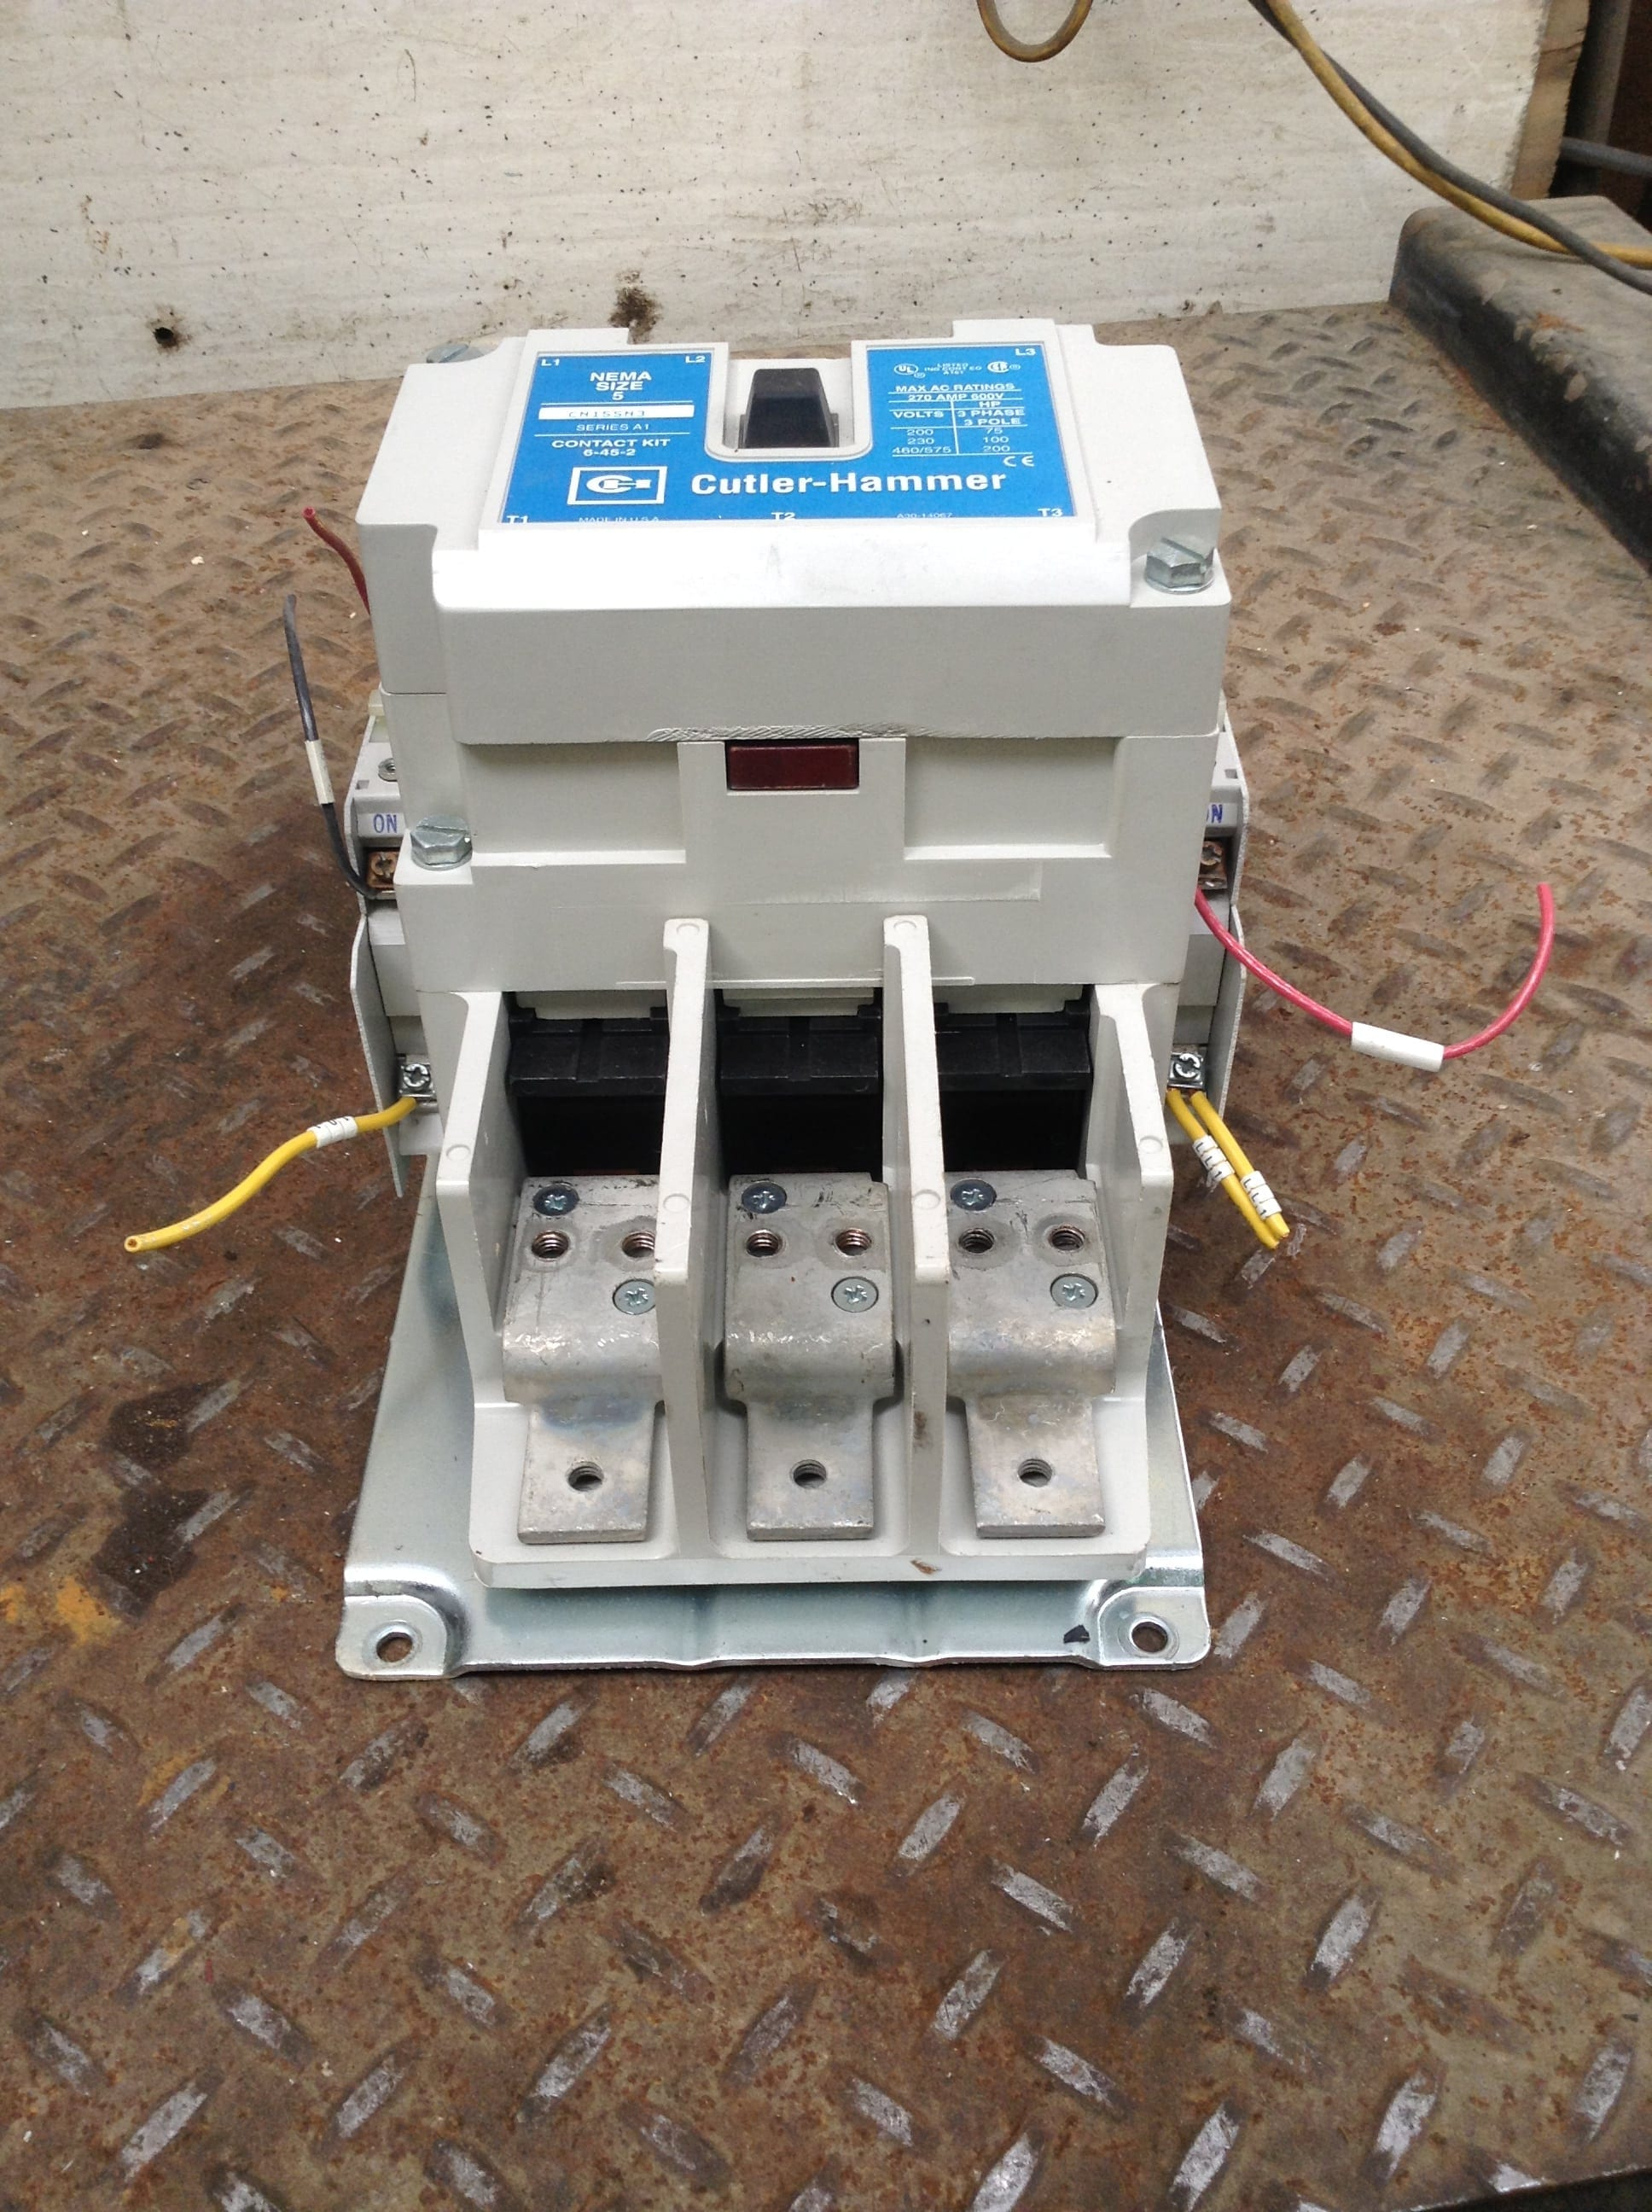 Cutler-Hammer CN15SN3 NEMA Size 5 Contactor/Starter 270A 600V 3PH 3 on 3 phase fan wiring, 3 phase breaker wiring, 3 phase magnetic contactor, 3 phase receptacle wiring, 3 phase electrical wiring, 3 phase compressor wiring, 3 phase starter wiring, 3 phase panel wiring, 3 phase heater wiring, 3 phase switch wiring, 3 phase pump wiring, 3 phase wiring symbols, 3 phase electrical installation, 3 phase transformer wiring, 3 phase connector wiring, 3 phase contactor with overload, 3 phase plug wiring, 3 phase brake wiring, 3 phase overload wiring, 3 phase meter wiring,